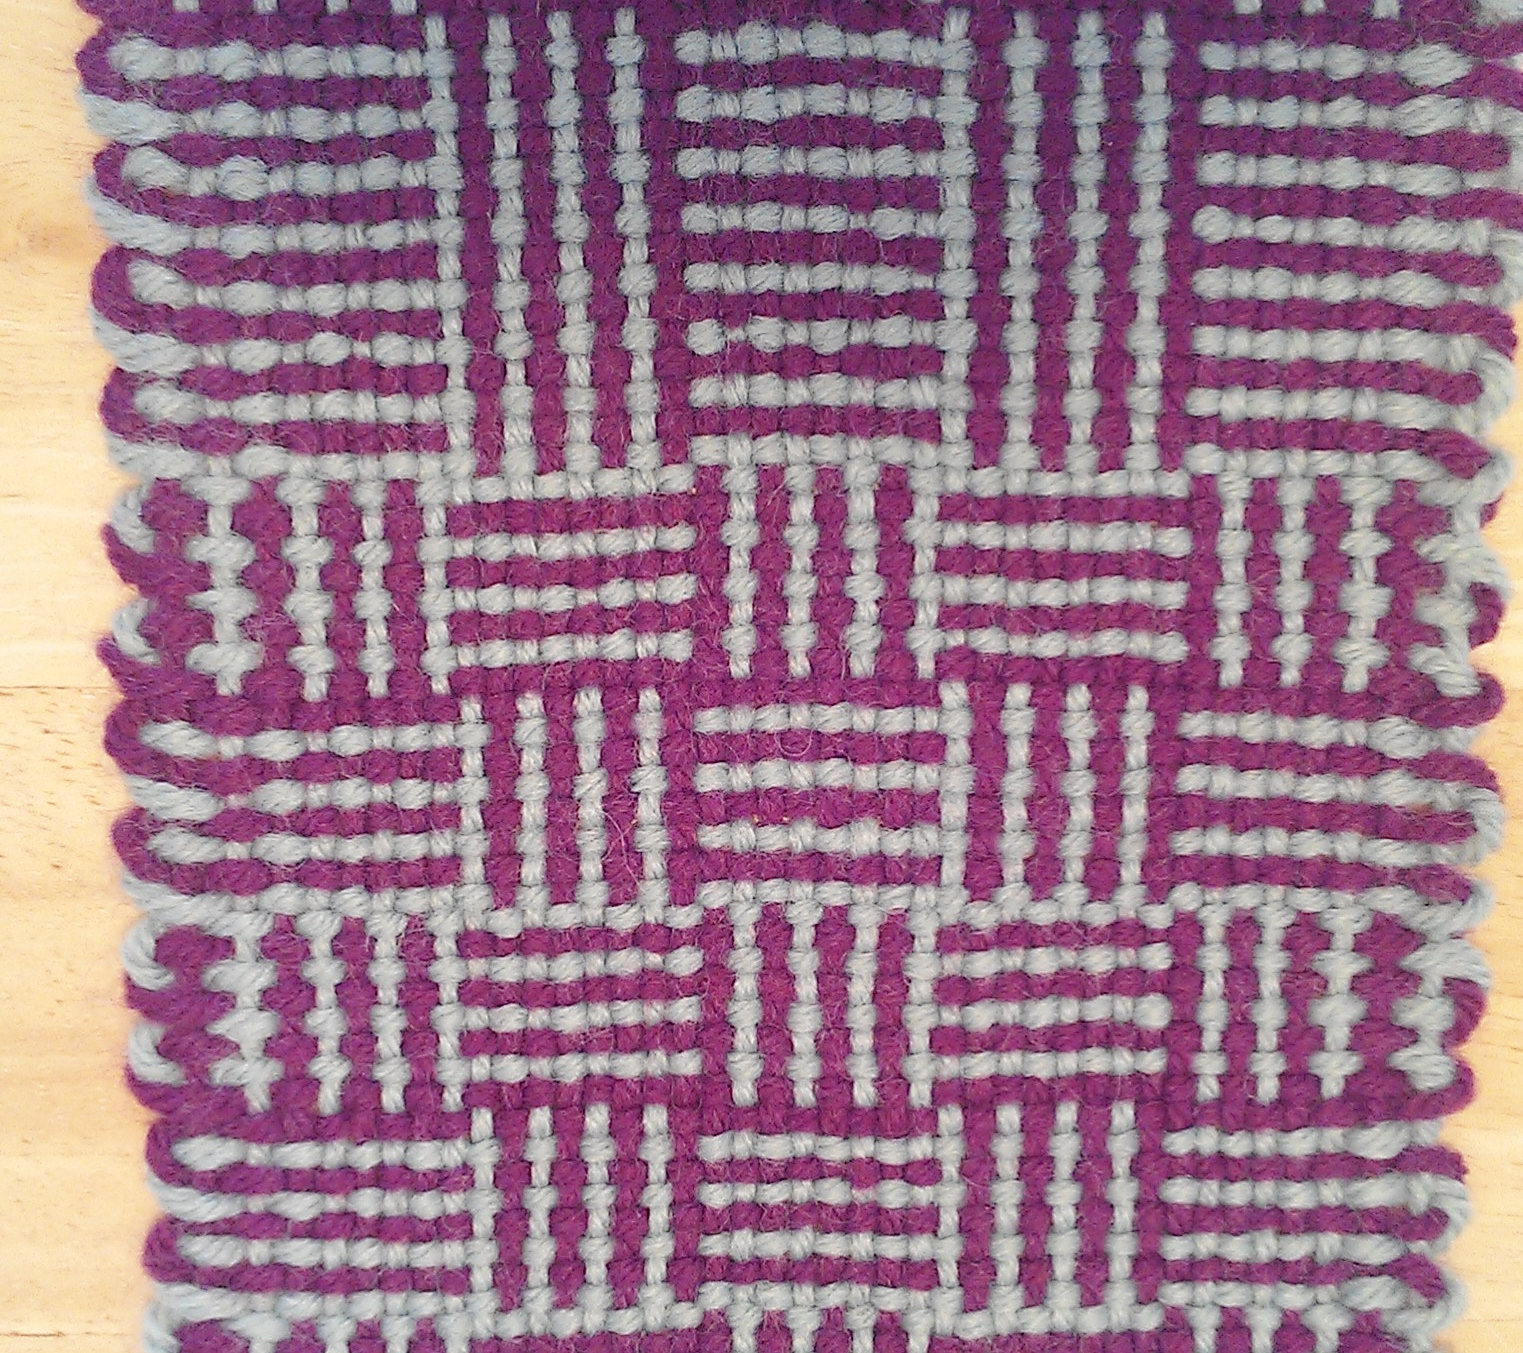 Loom Weaving Patterns Simple Design Inspiration